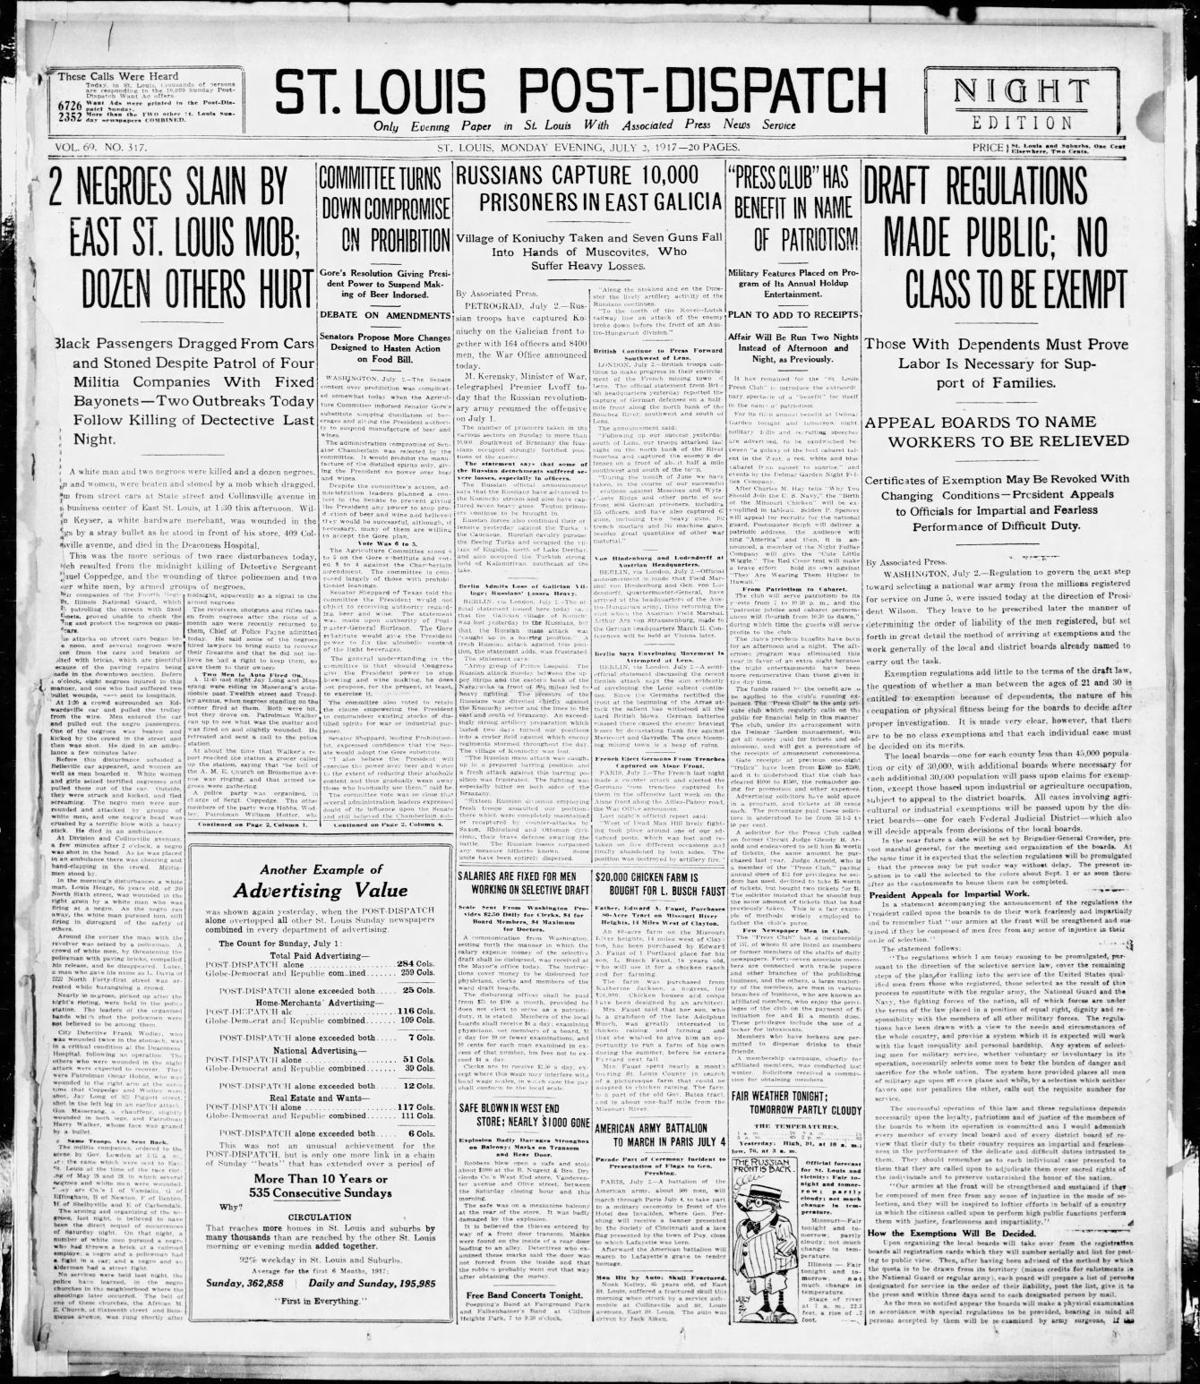 July 2, 1917 - 2 Black people Slain by East St. Louis mob